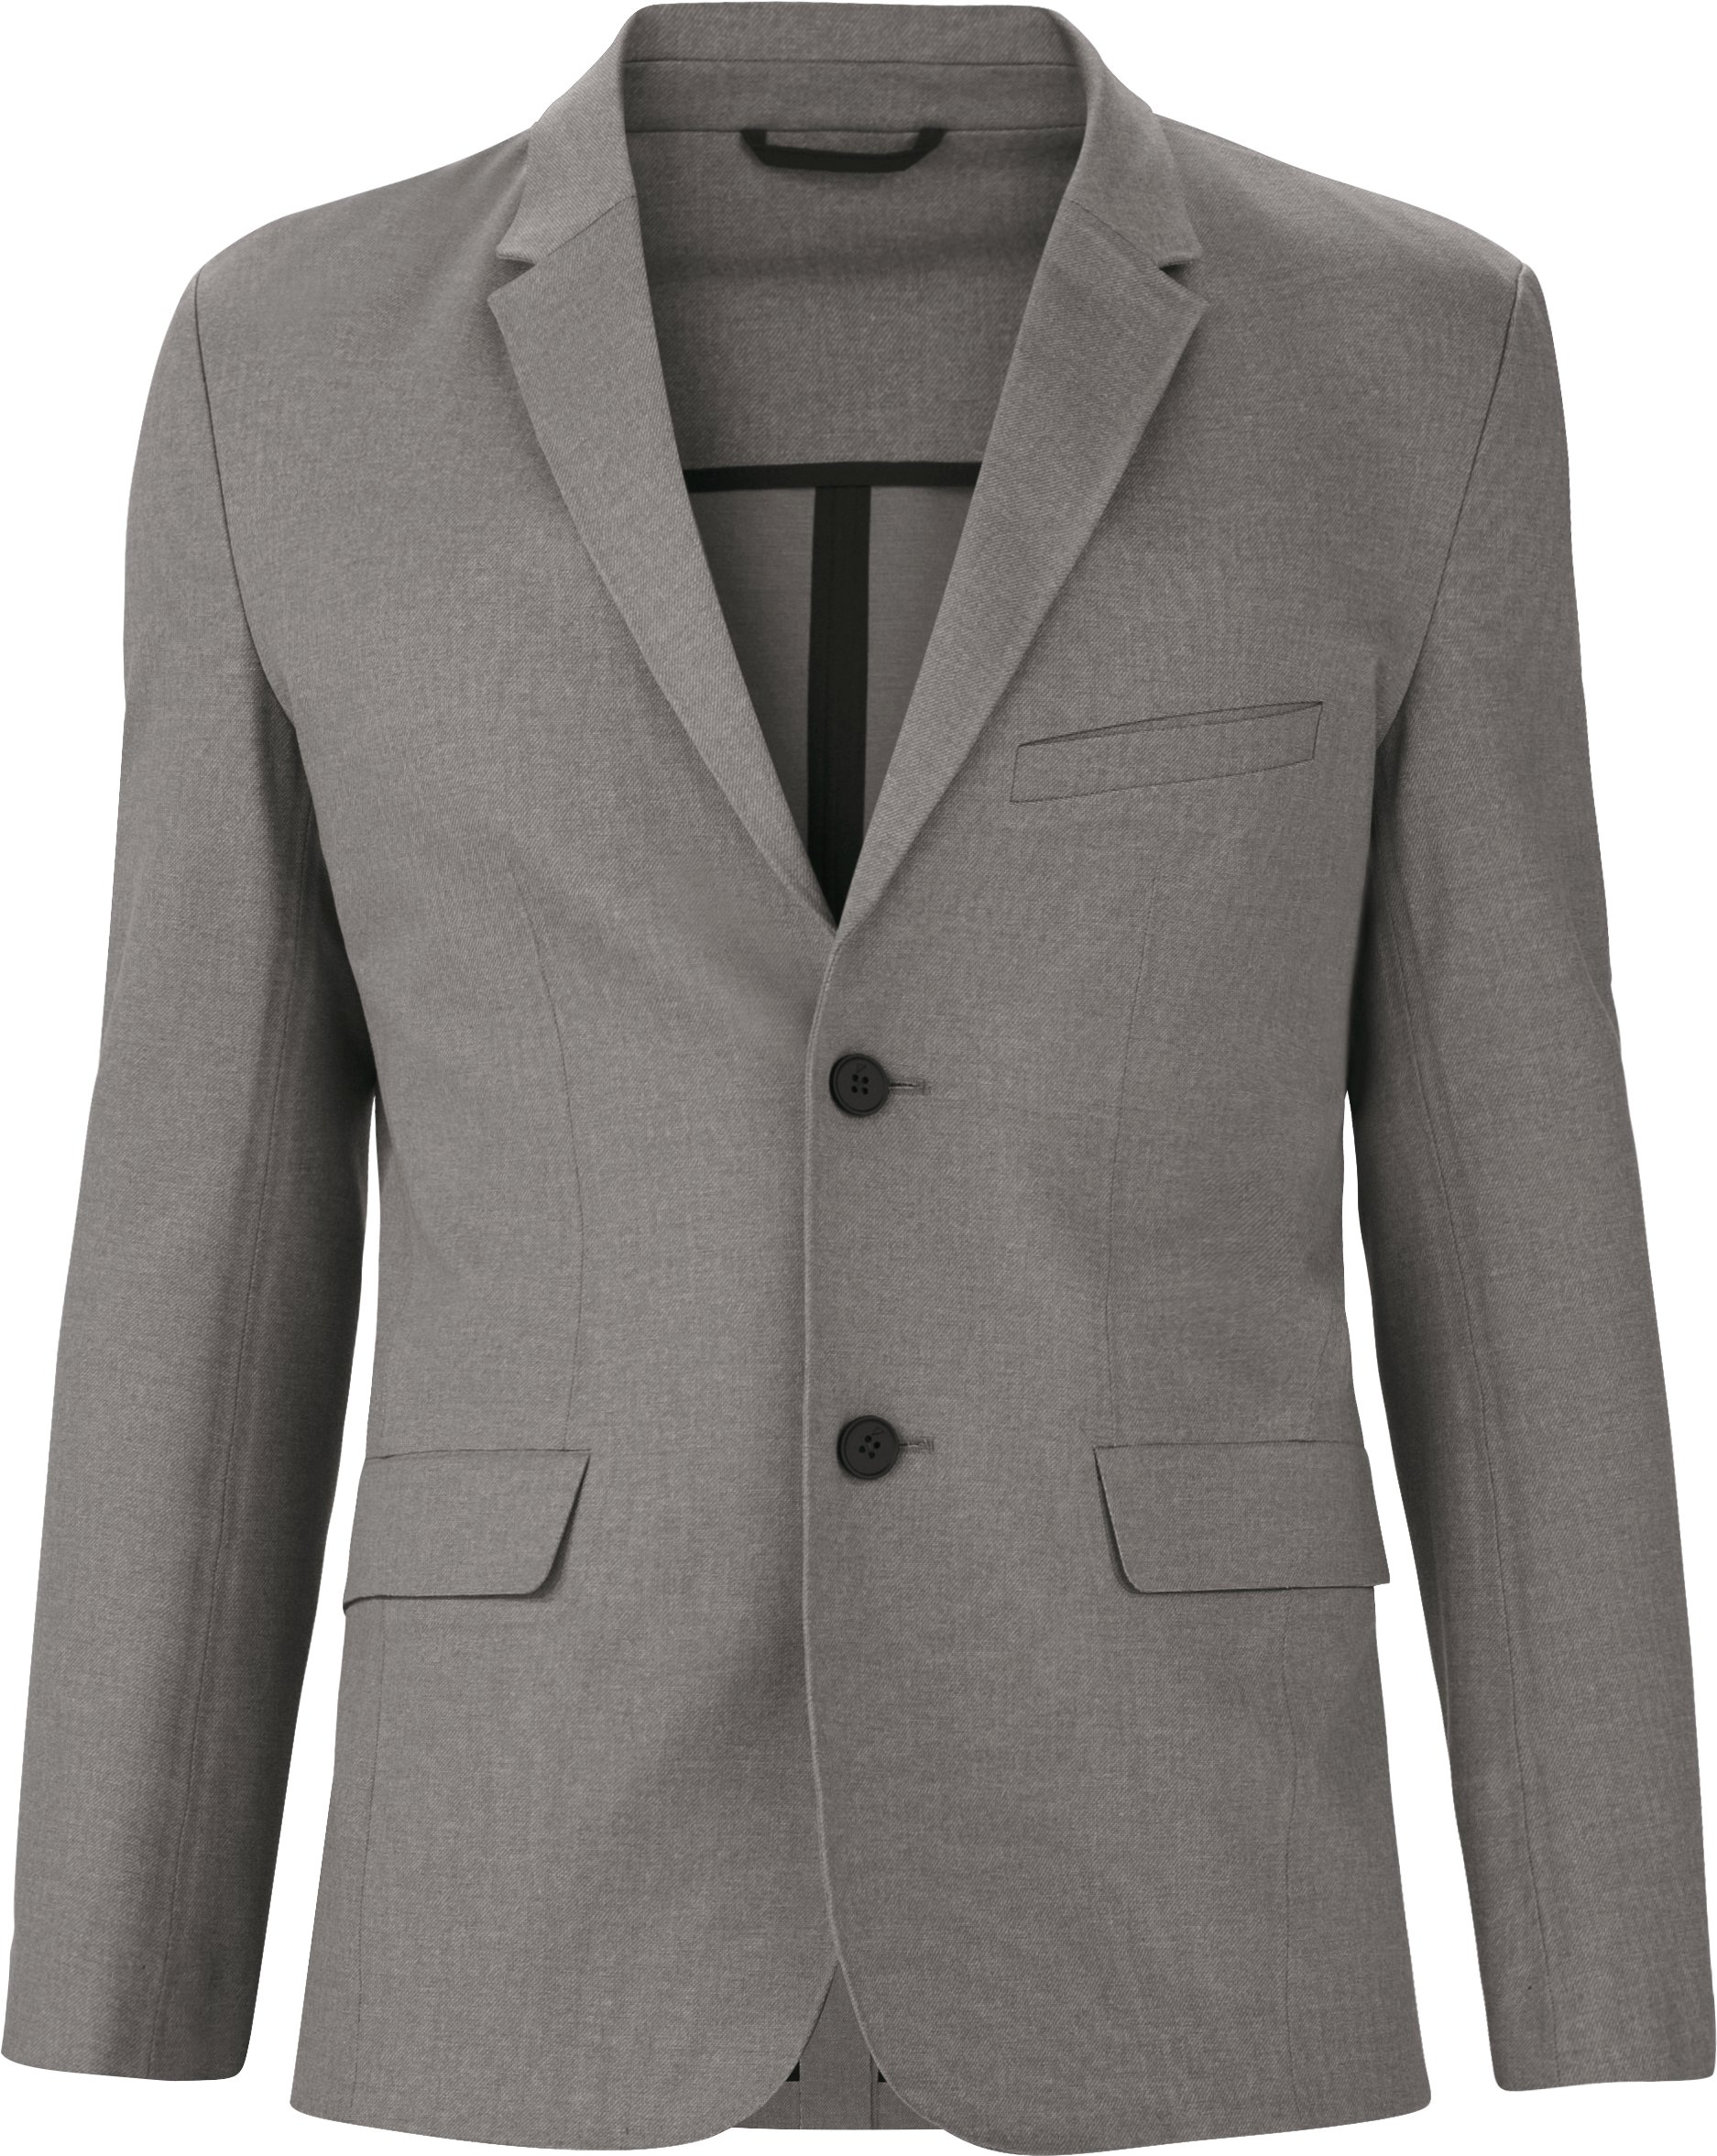 Men's UAS Draftday Tailored Blazer, LIGHT HEATHER GRAY, undefined